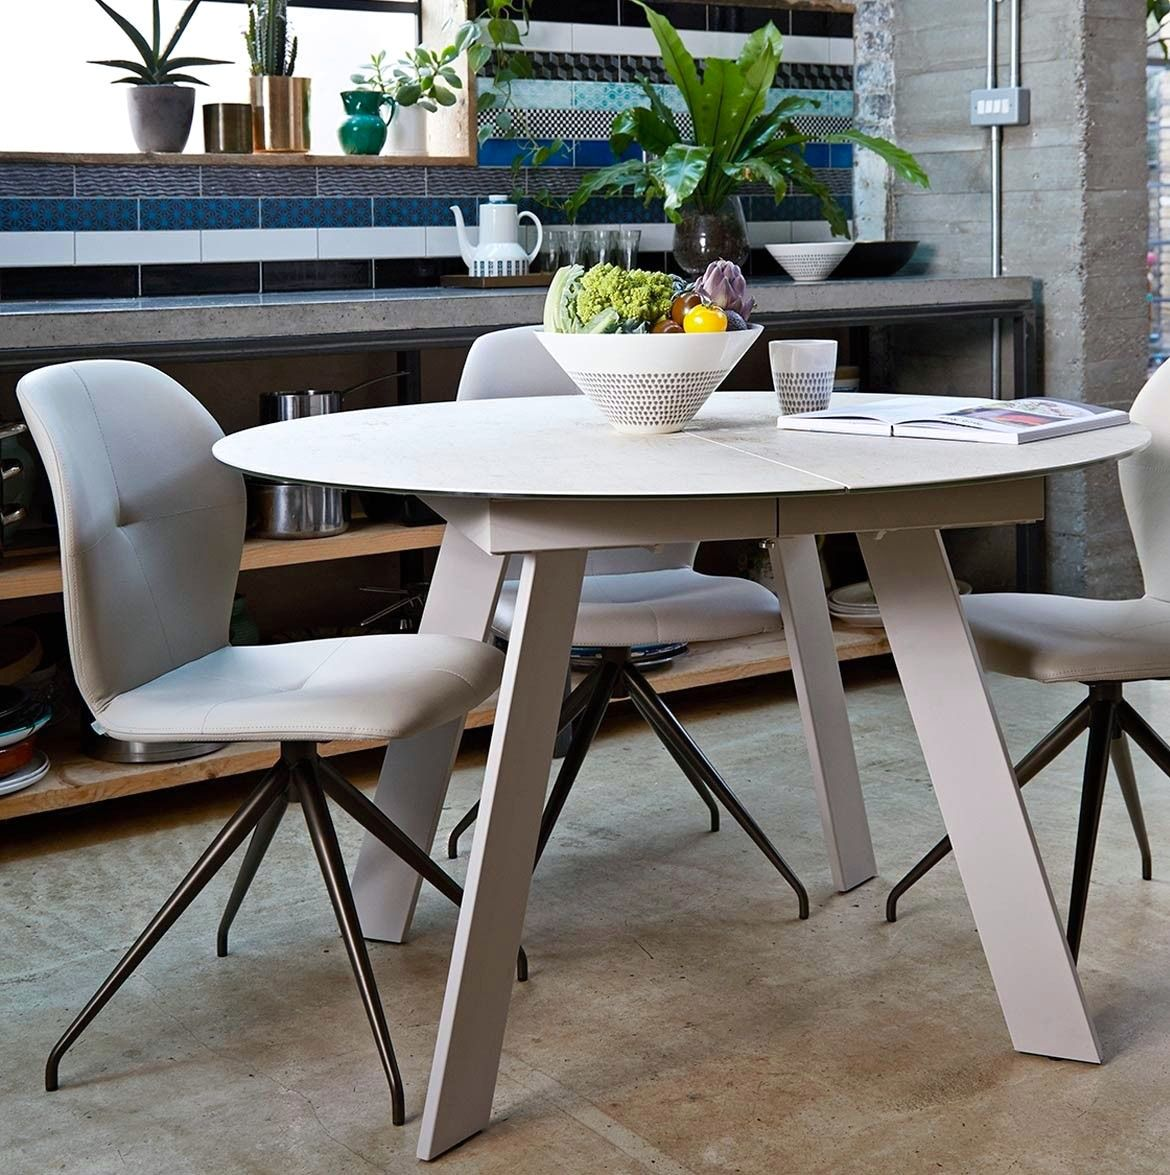 Inspiring Round High Top Dining Table Just On Indoneso Home Design Dining Table Round Dining Table Round Dining Table Sets